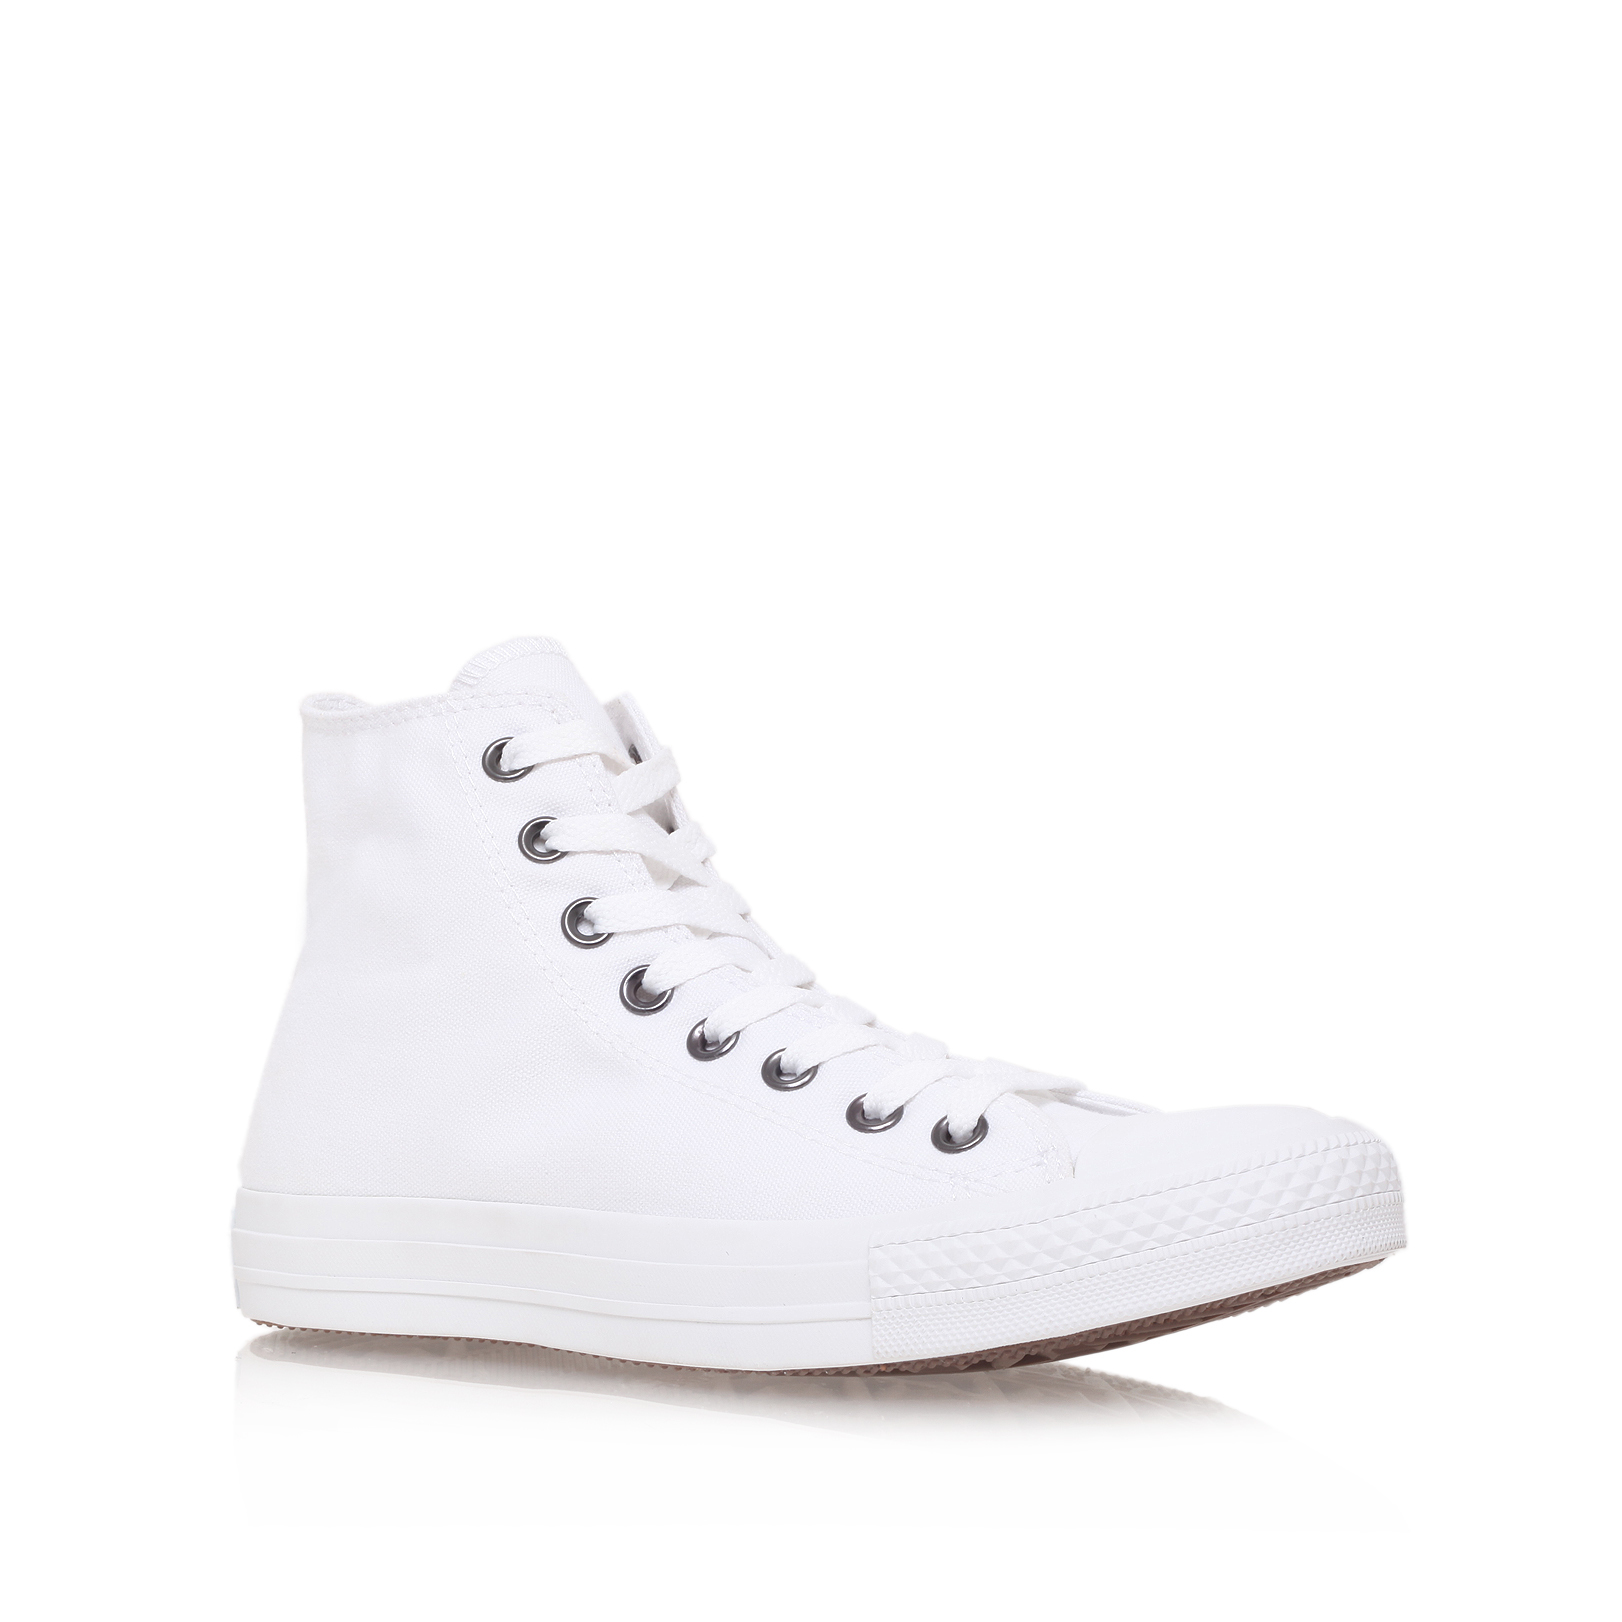 CTAS LEATHER MONO LTHR HI